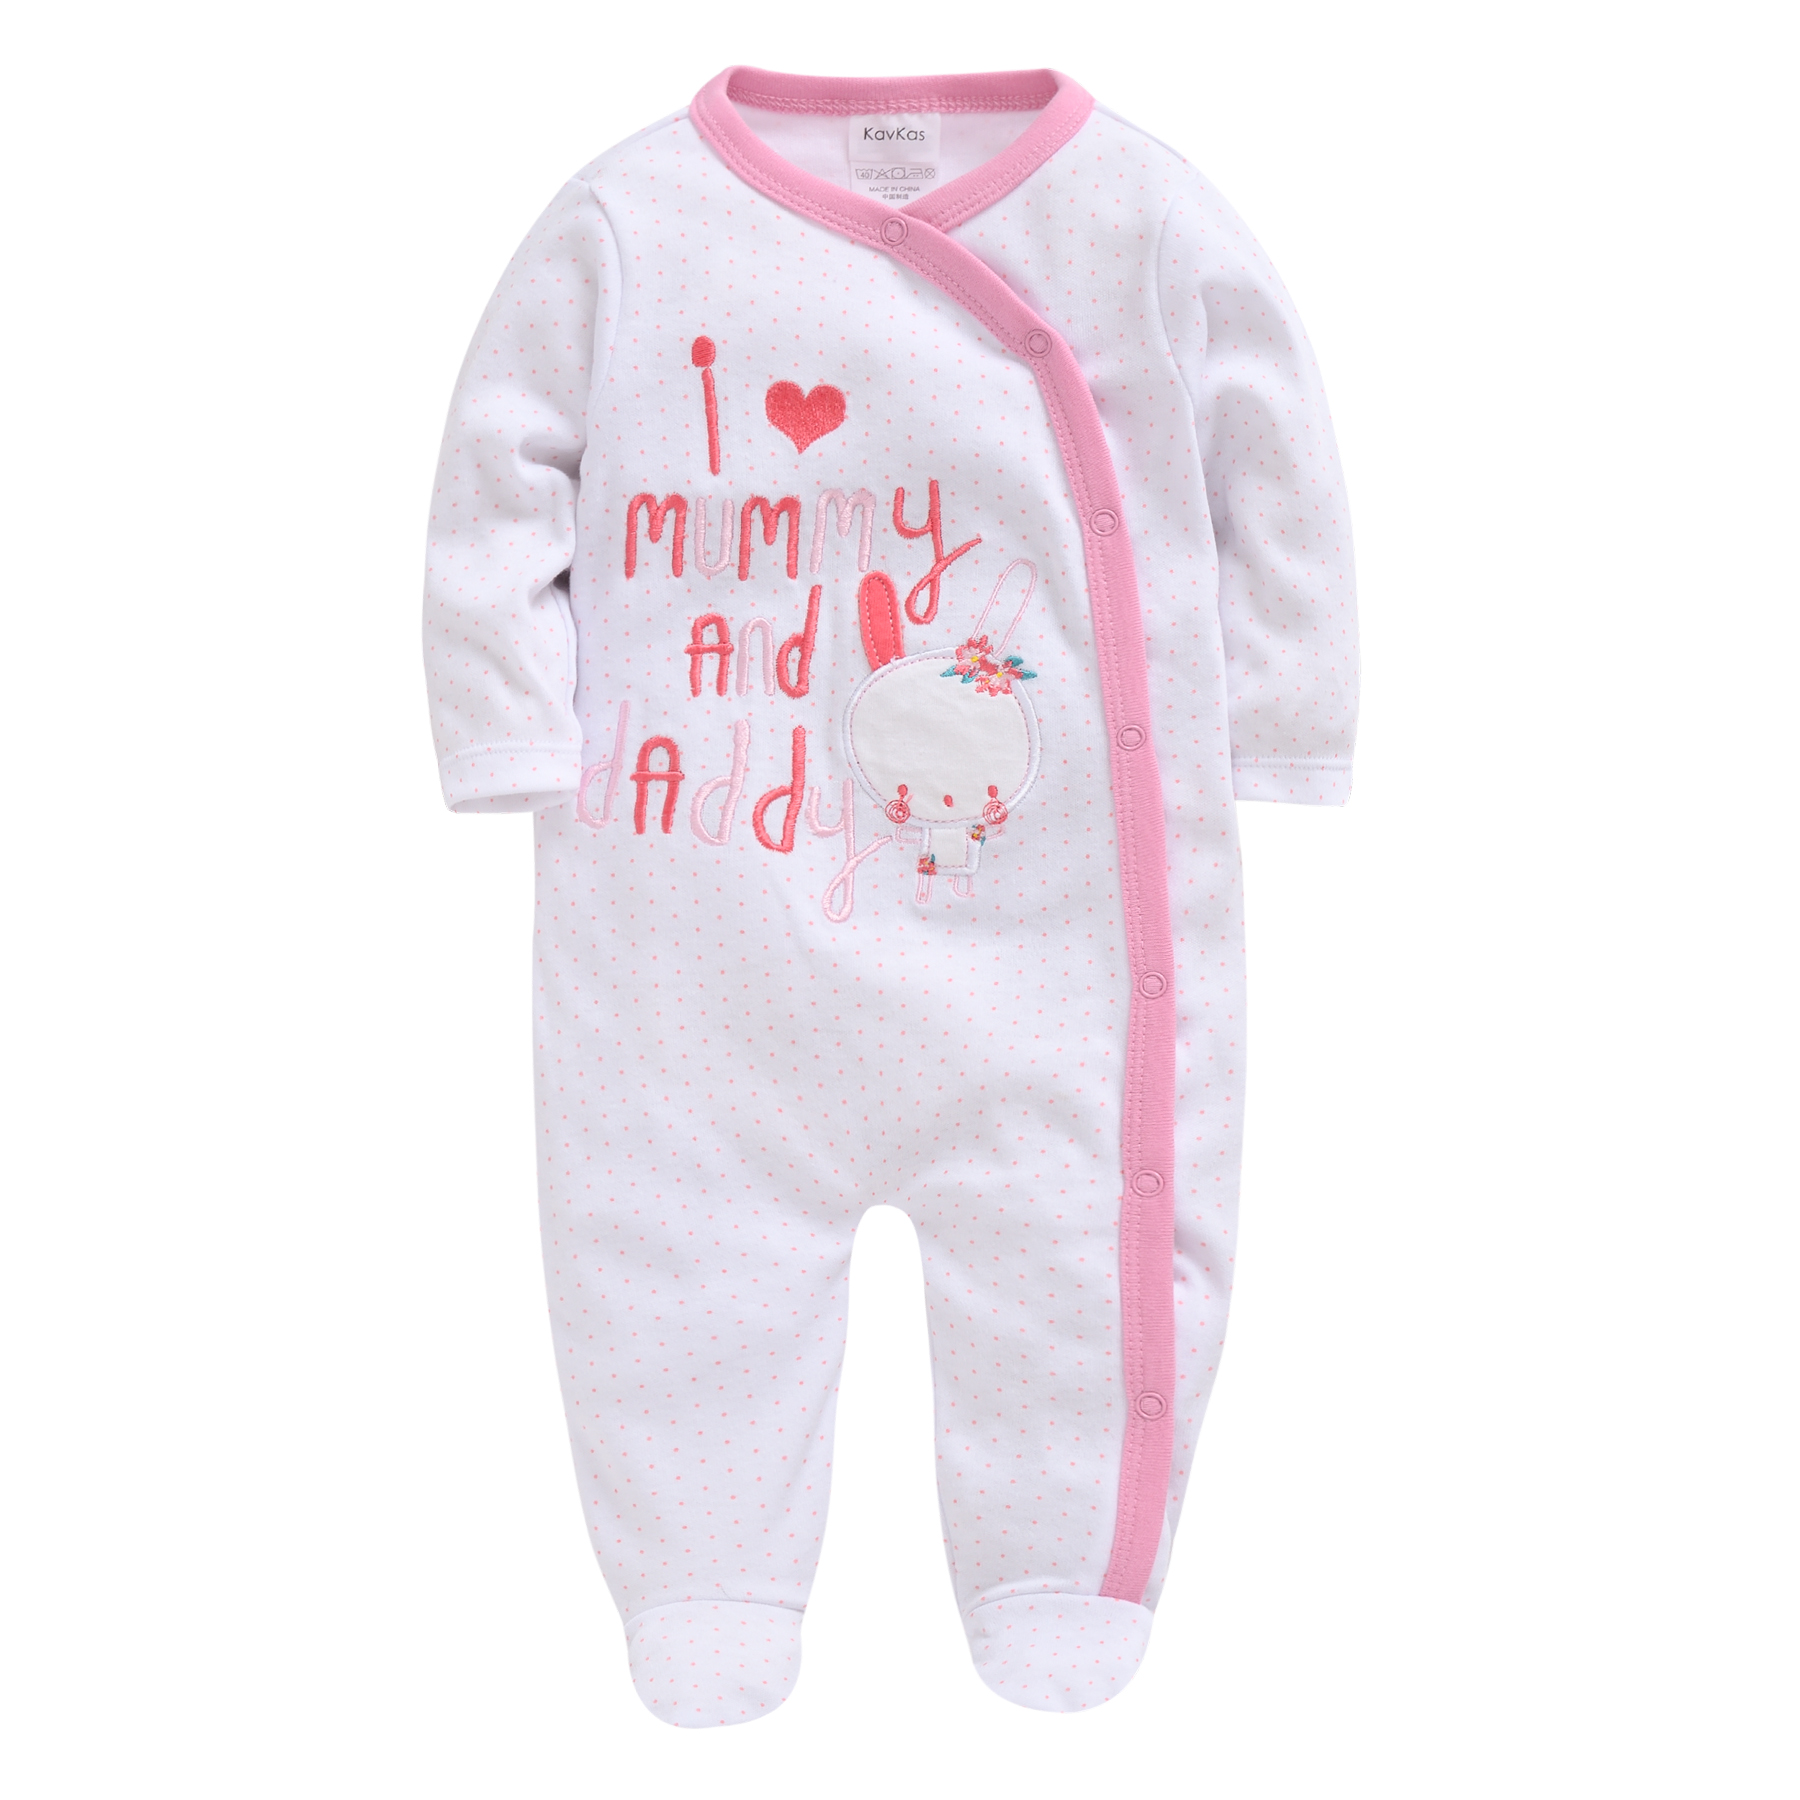 2019 0-12M Newborn Baby Girl Clothes Cute Cartoon Printed Infant Baby Rompers Jumpsuit Fashion New Toddler Baby Outfits Clothes